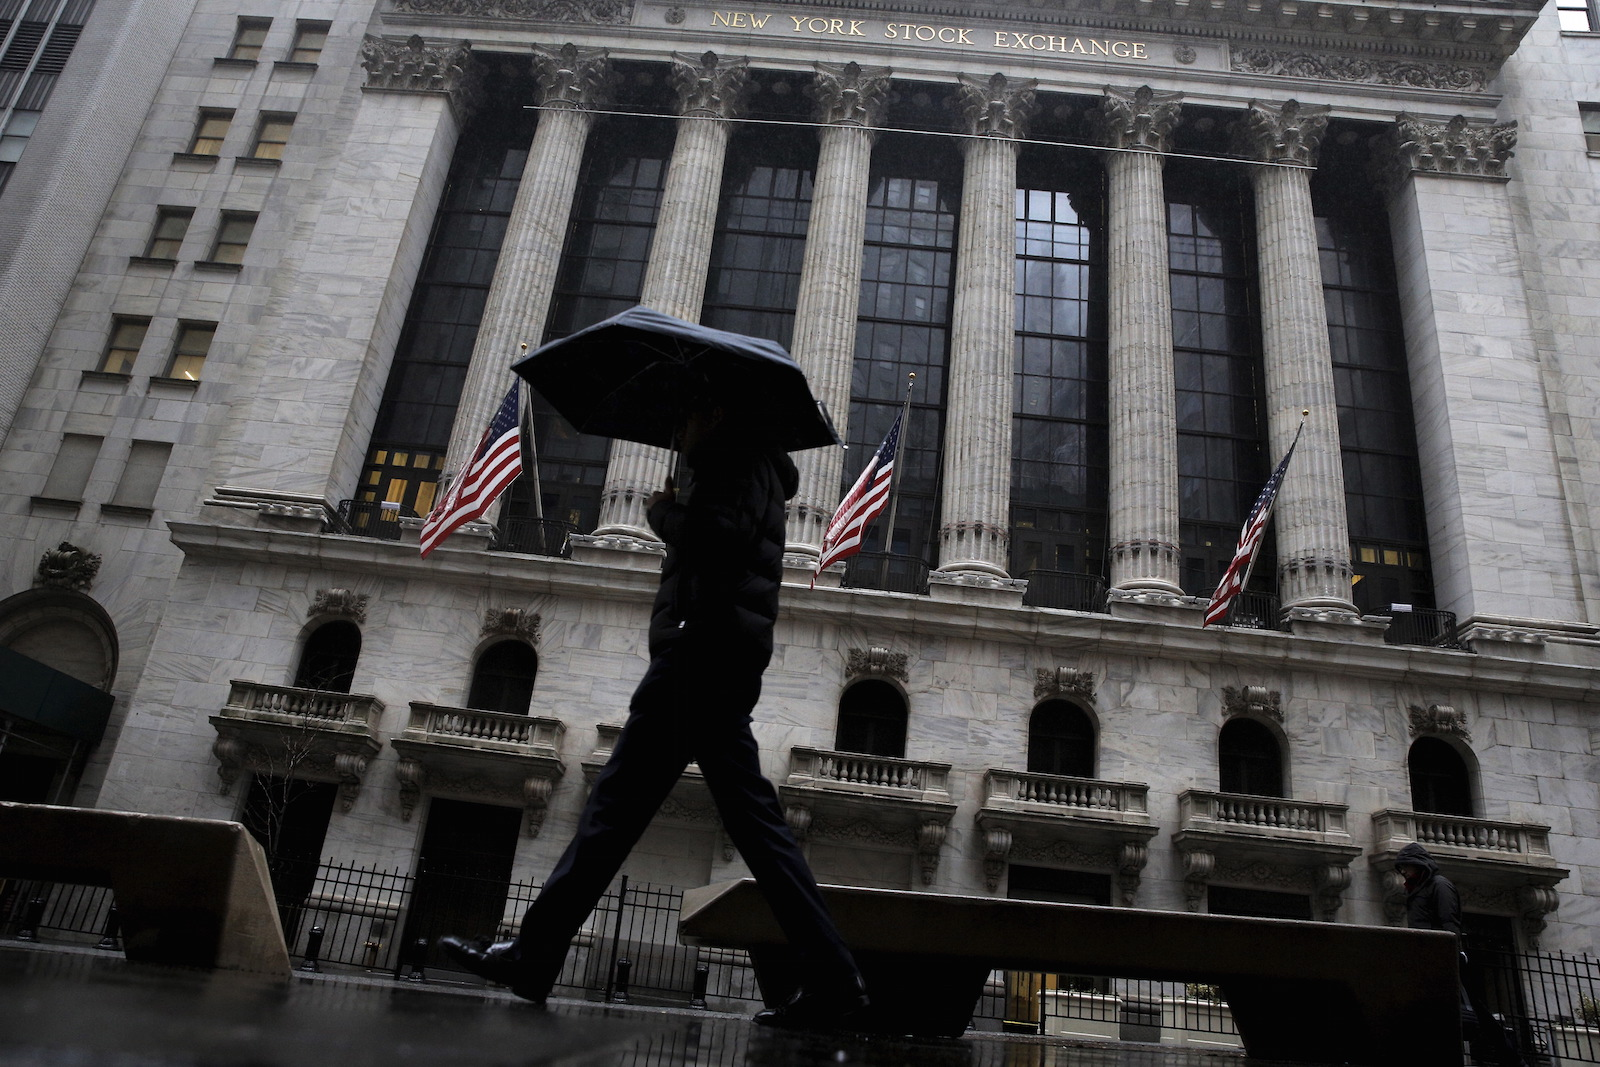 A man passes by the New York Stock Exchange during a rain storm in New York February 24, 2016.